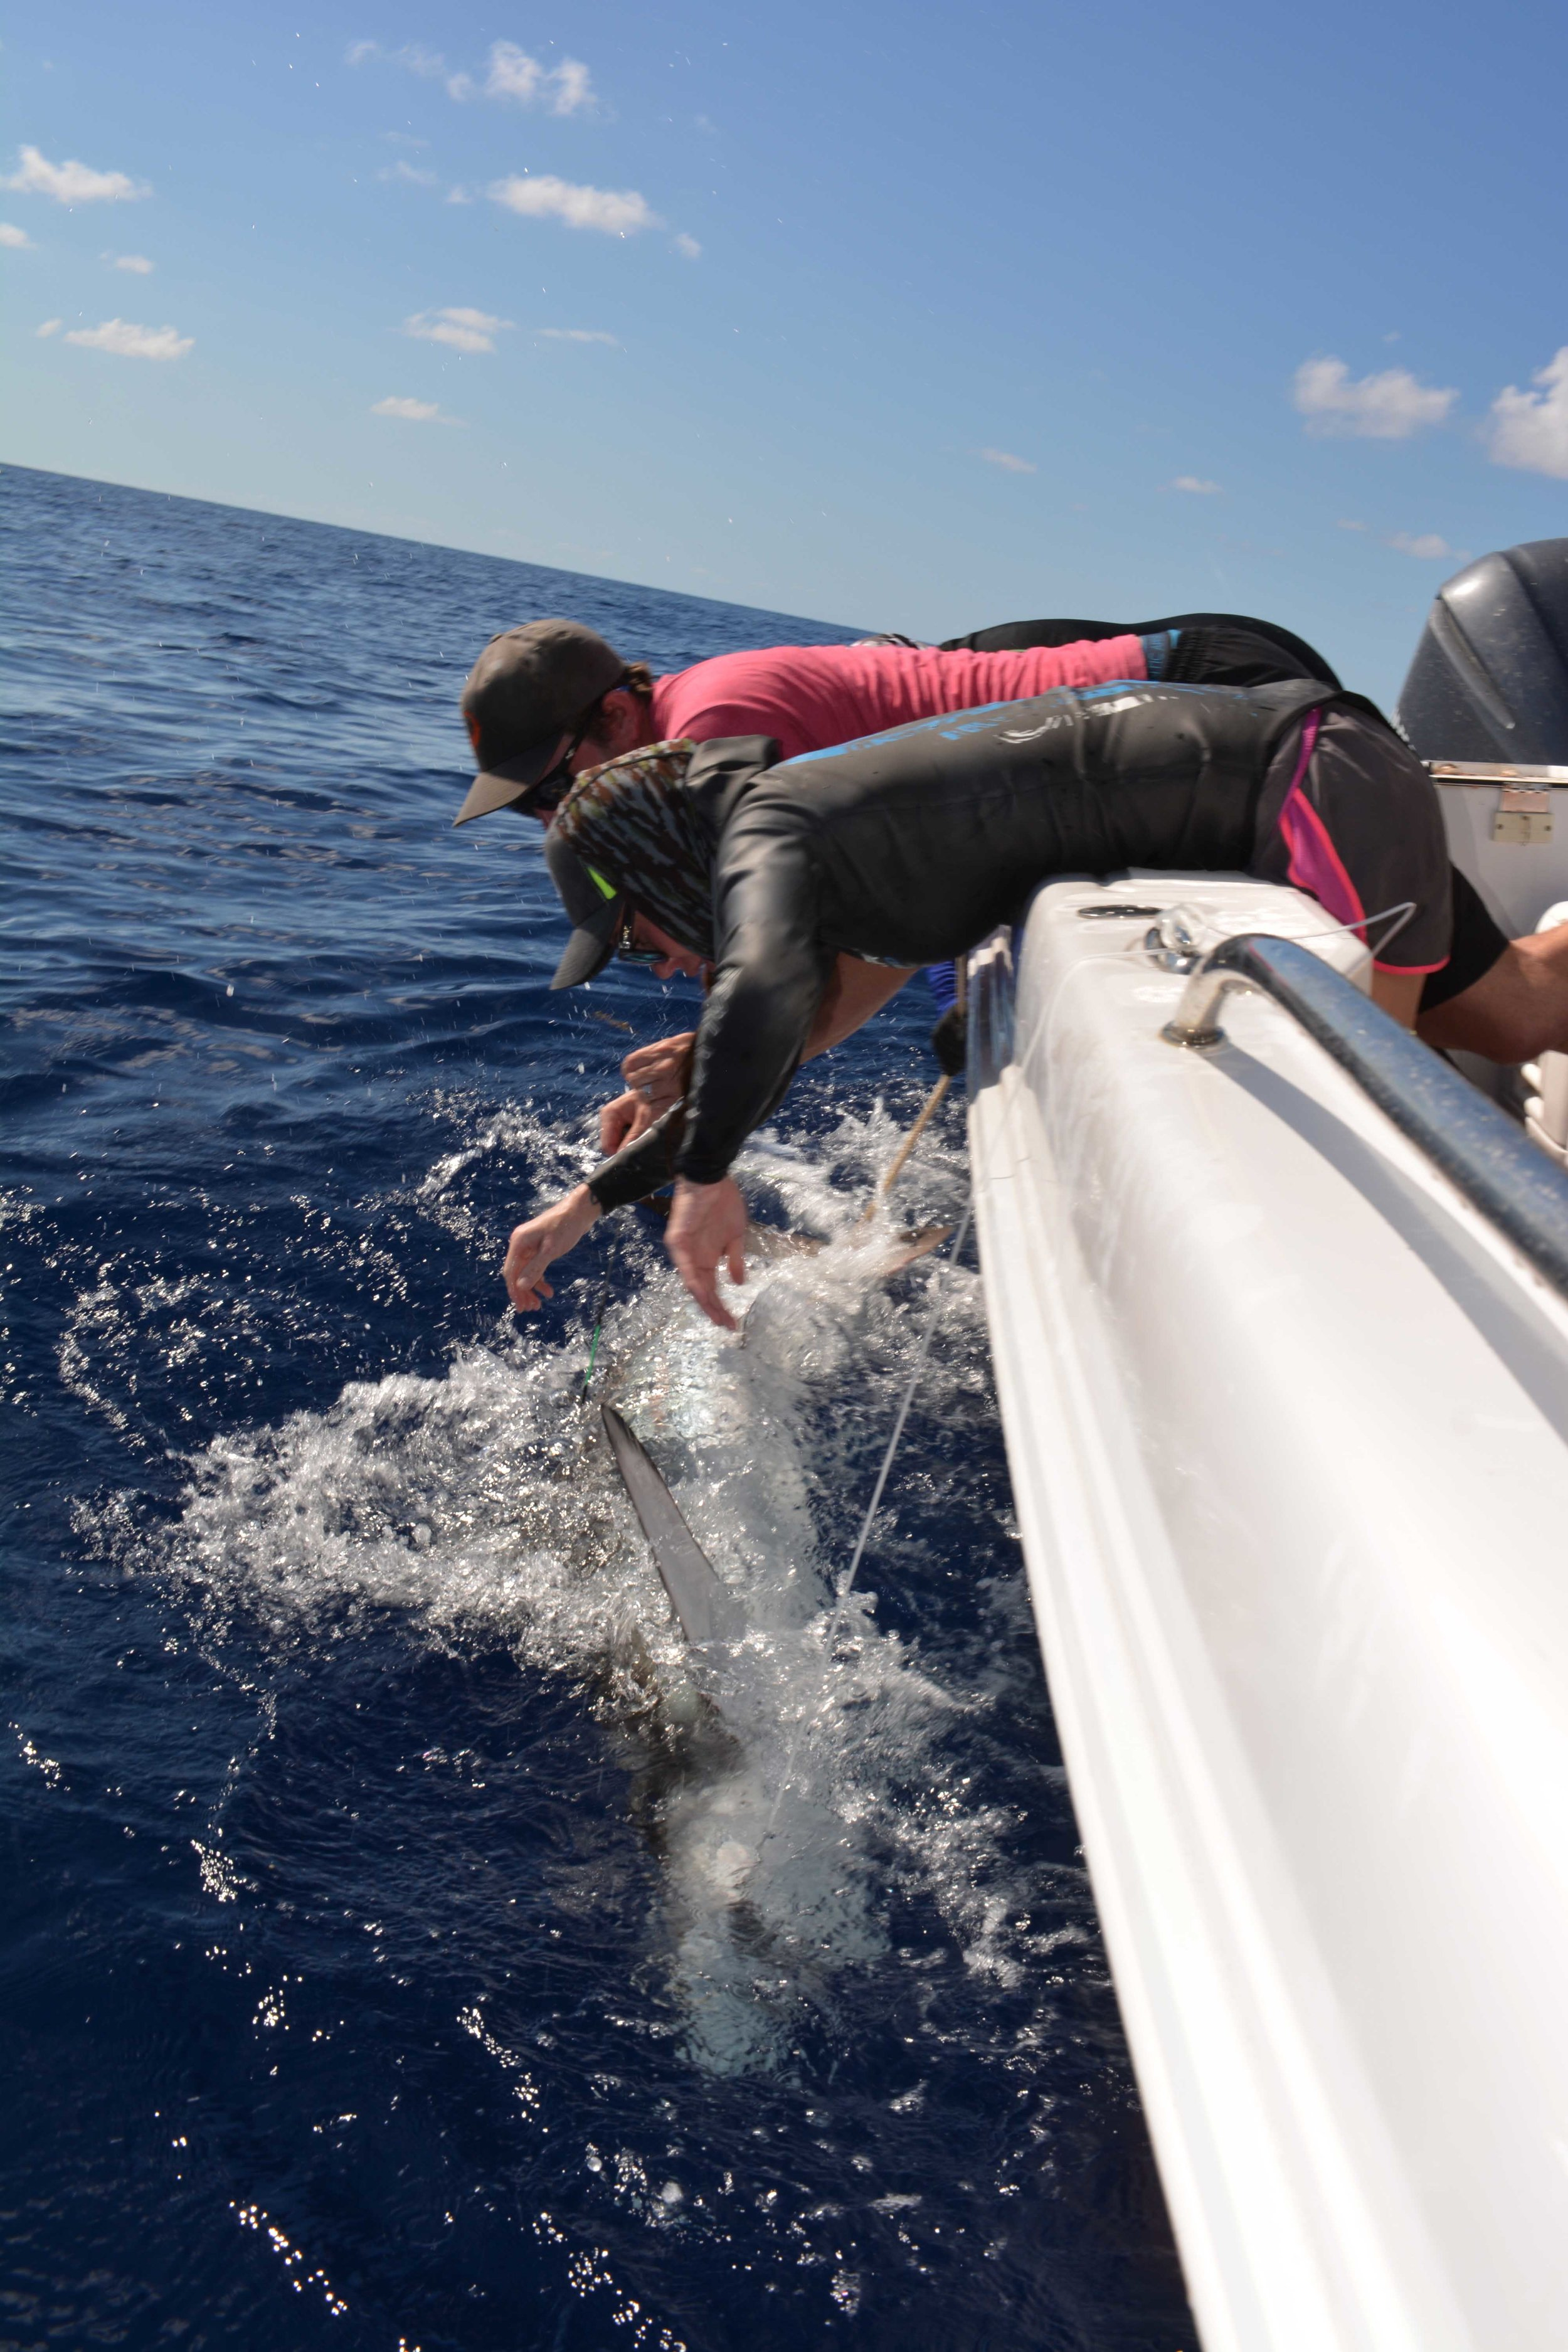 Securing the shark for safety